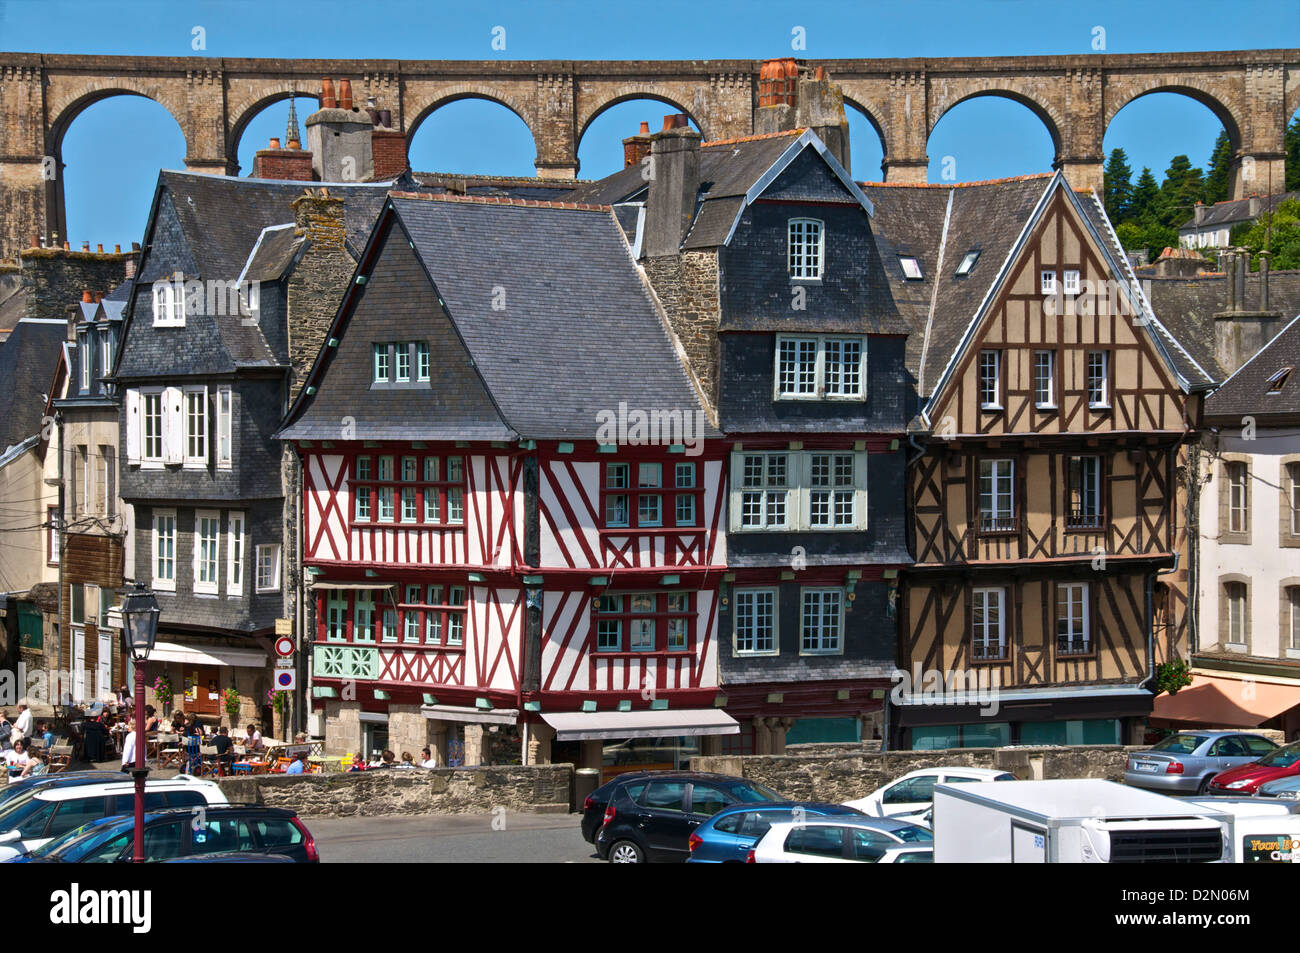 Medieval half timbered houses, with viaduct in the background, old town, Morlaix, Finistere, Brittany, France, Europe - Stock Image